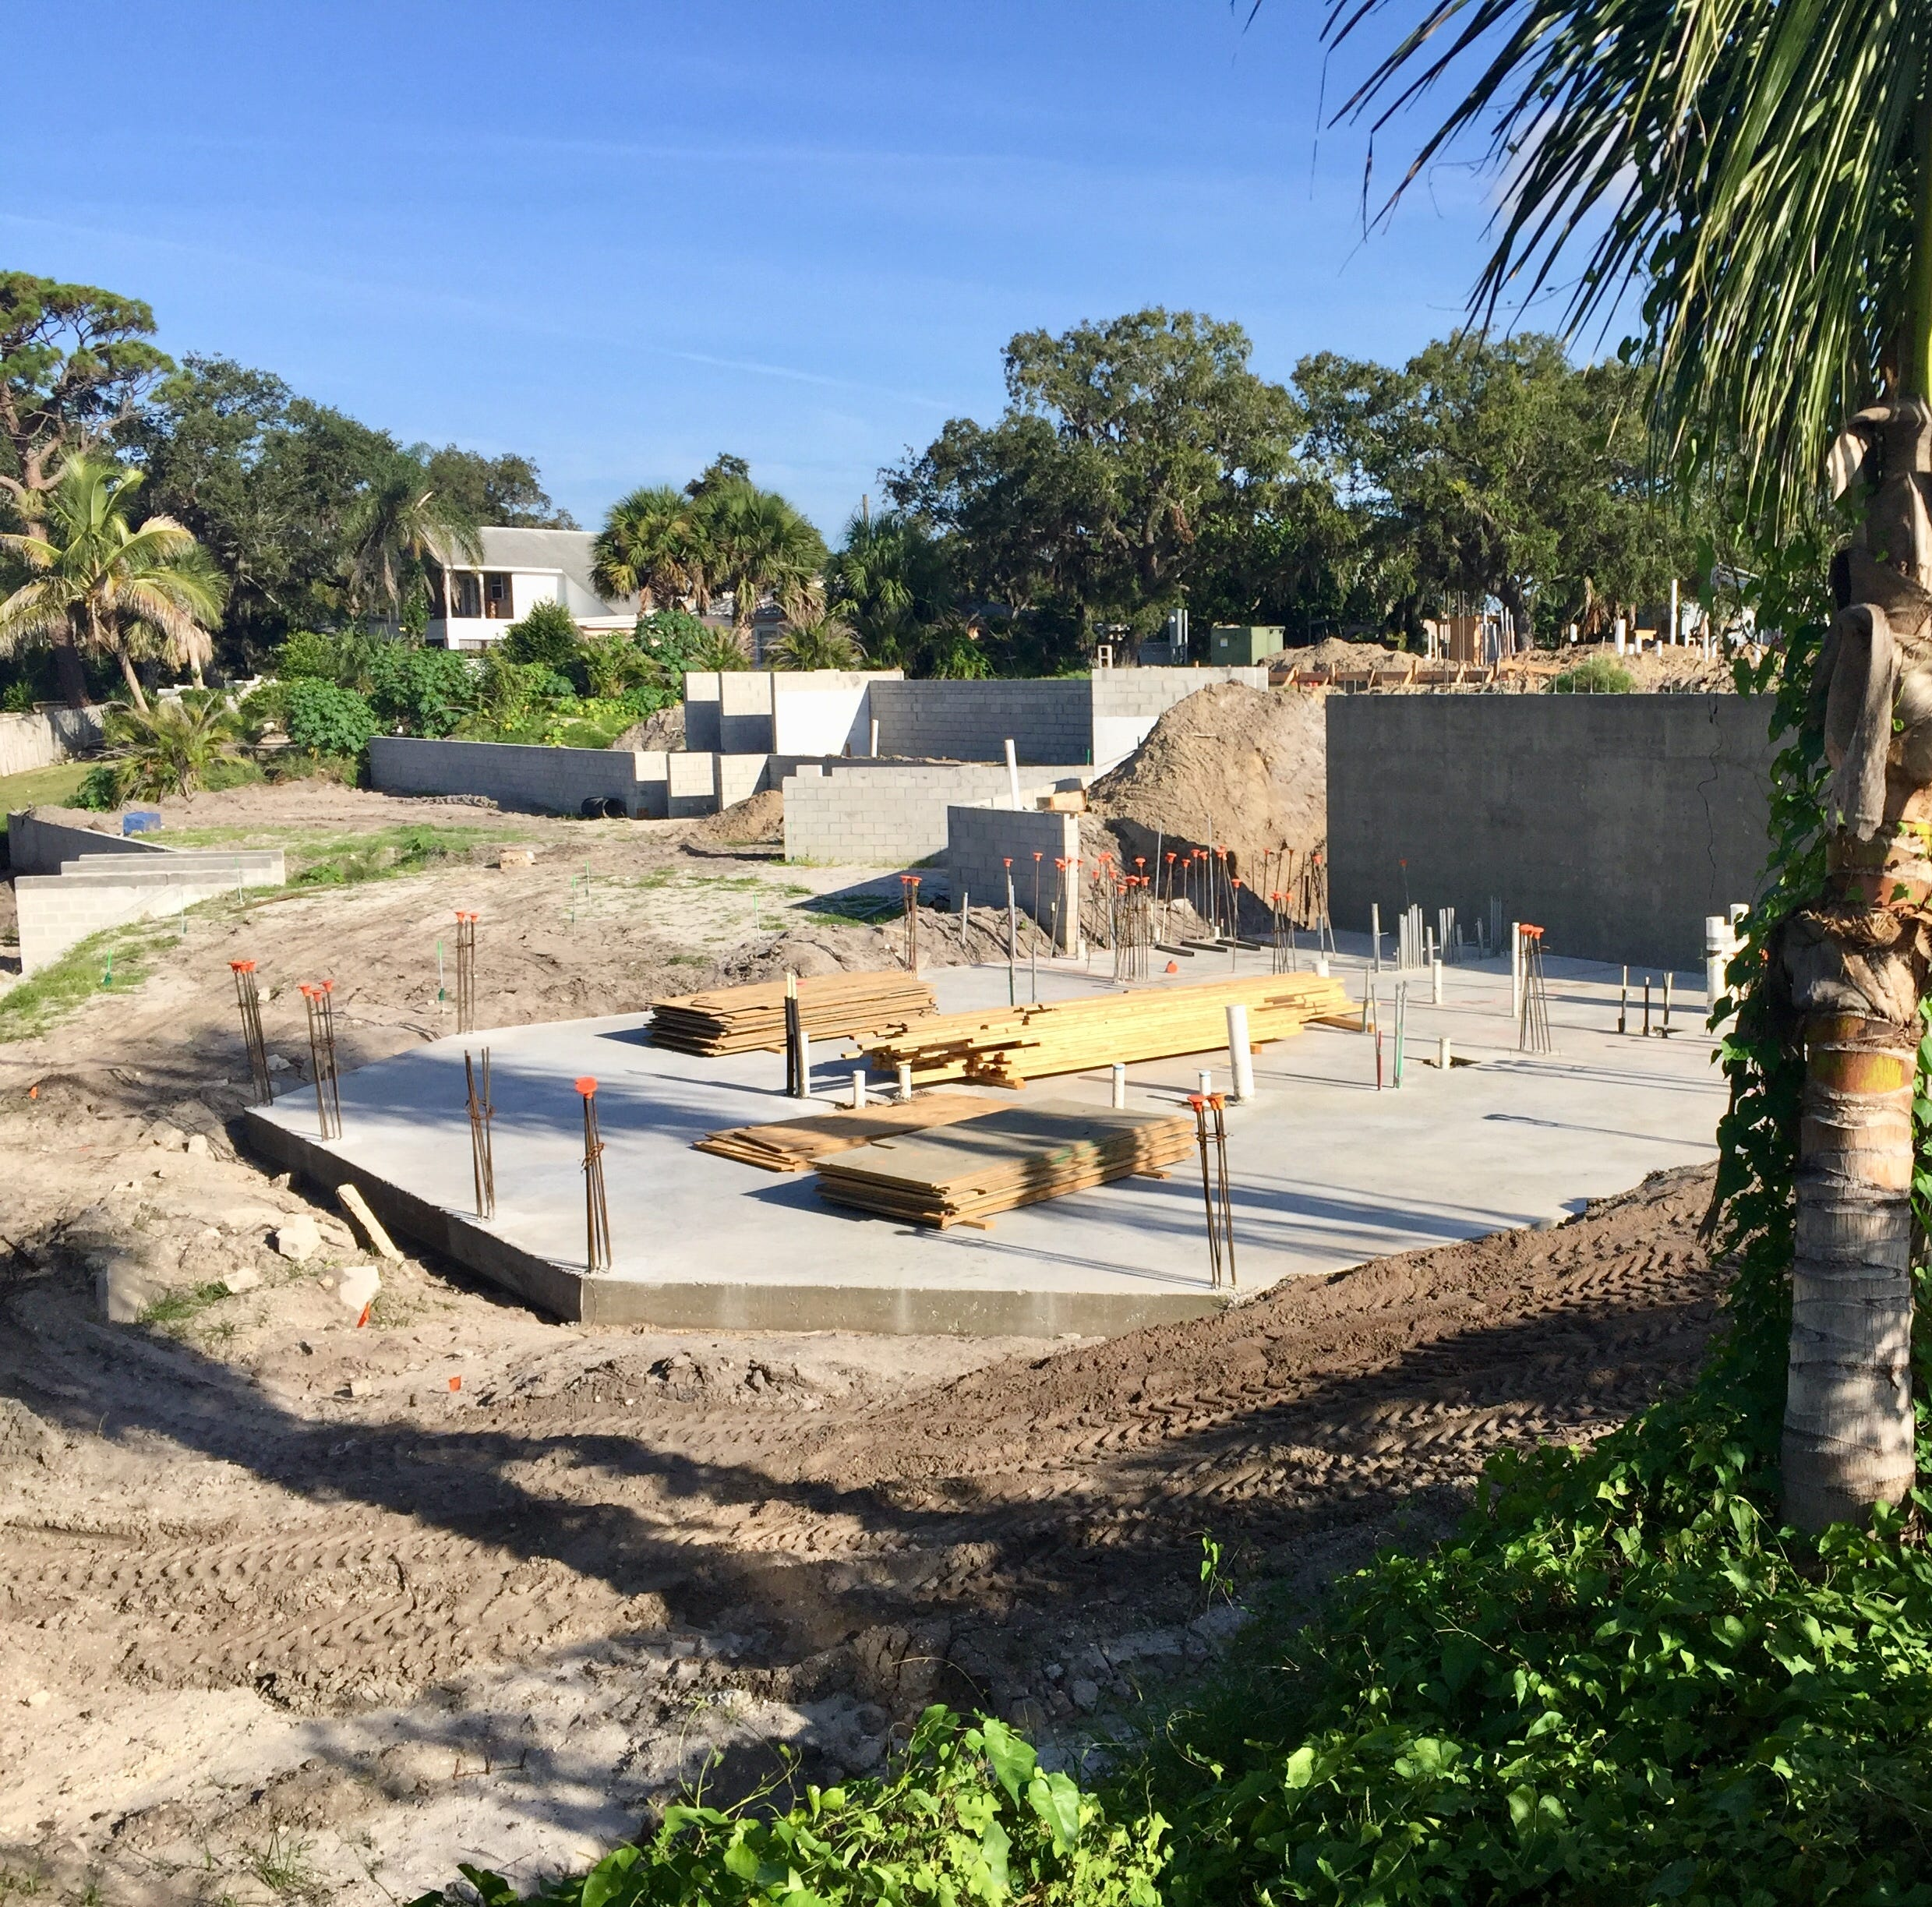 Eau Gallie River Crab House site to become North Palm Beach-based tropical restaurant-bar